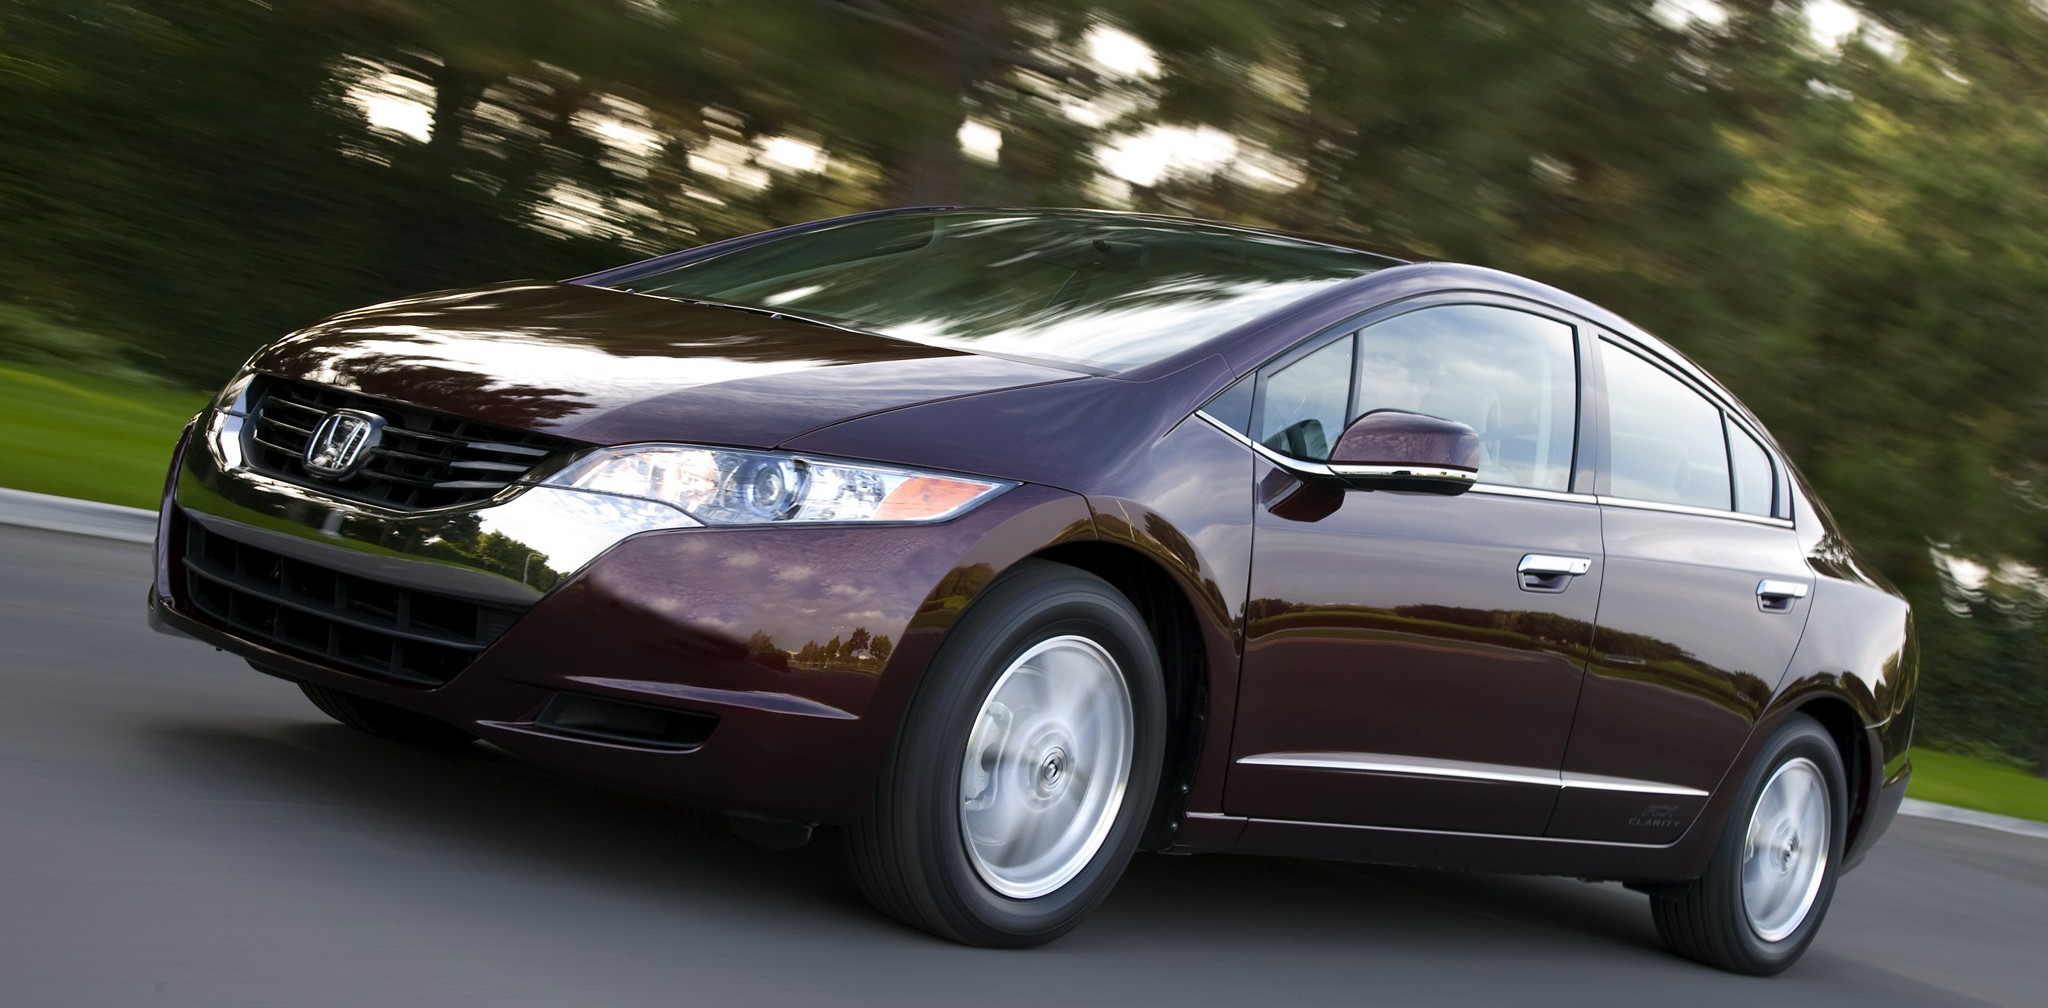 Gm Honda To Collaborate On Fuel Cell Technologies Paul